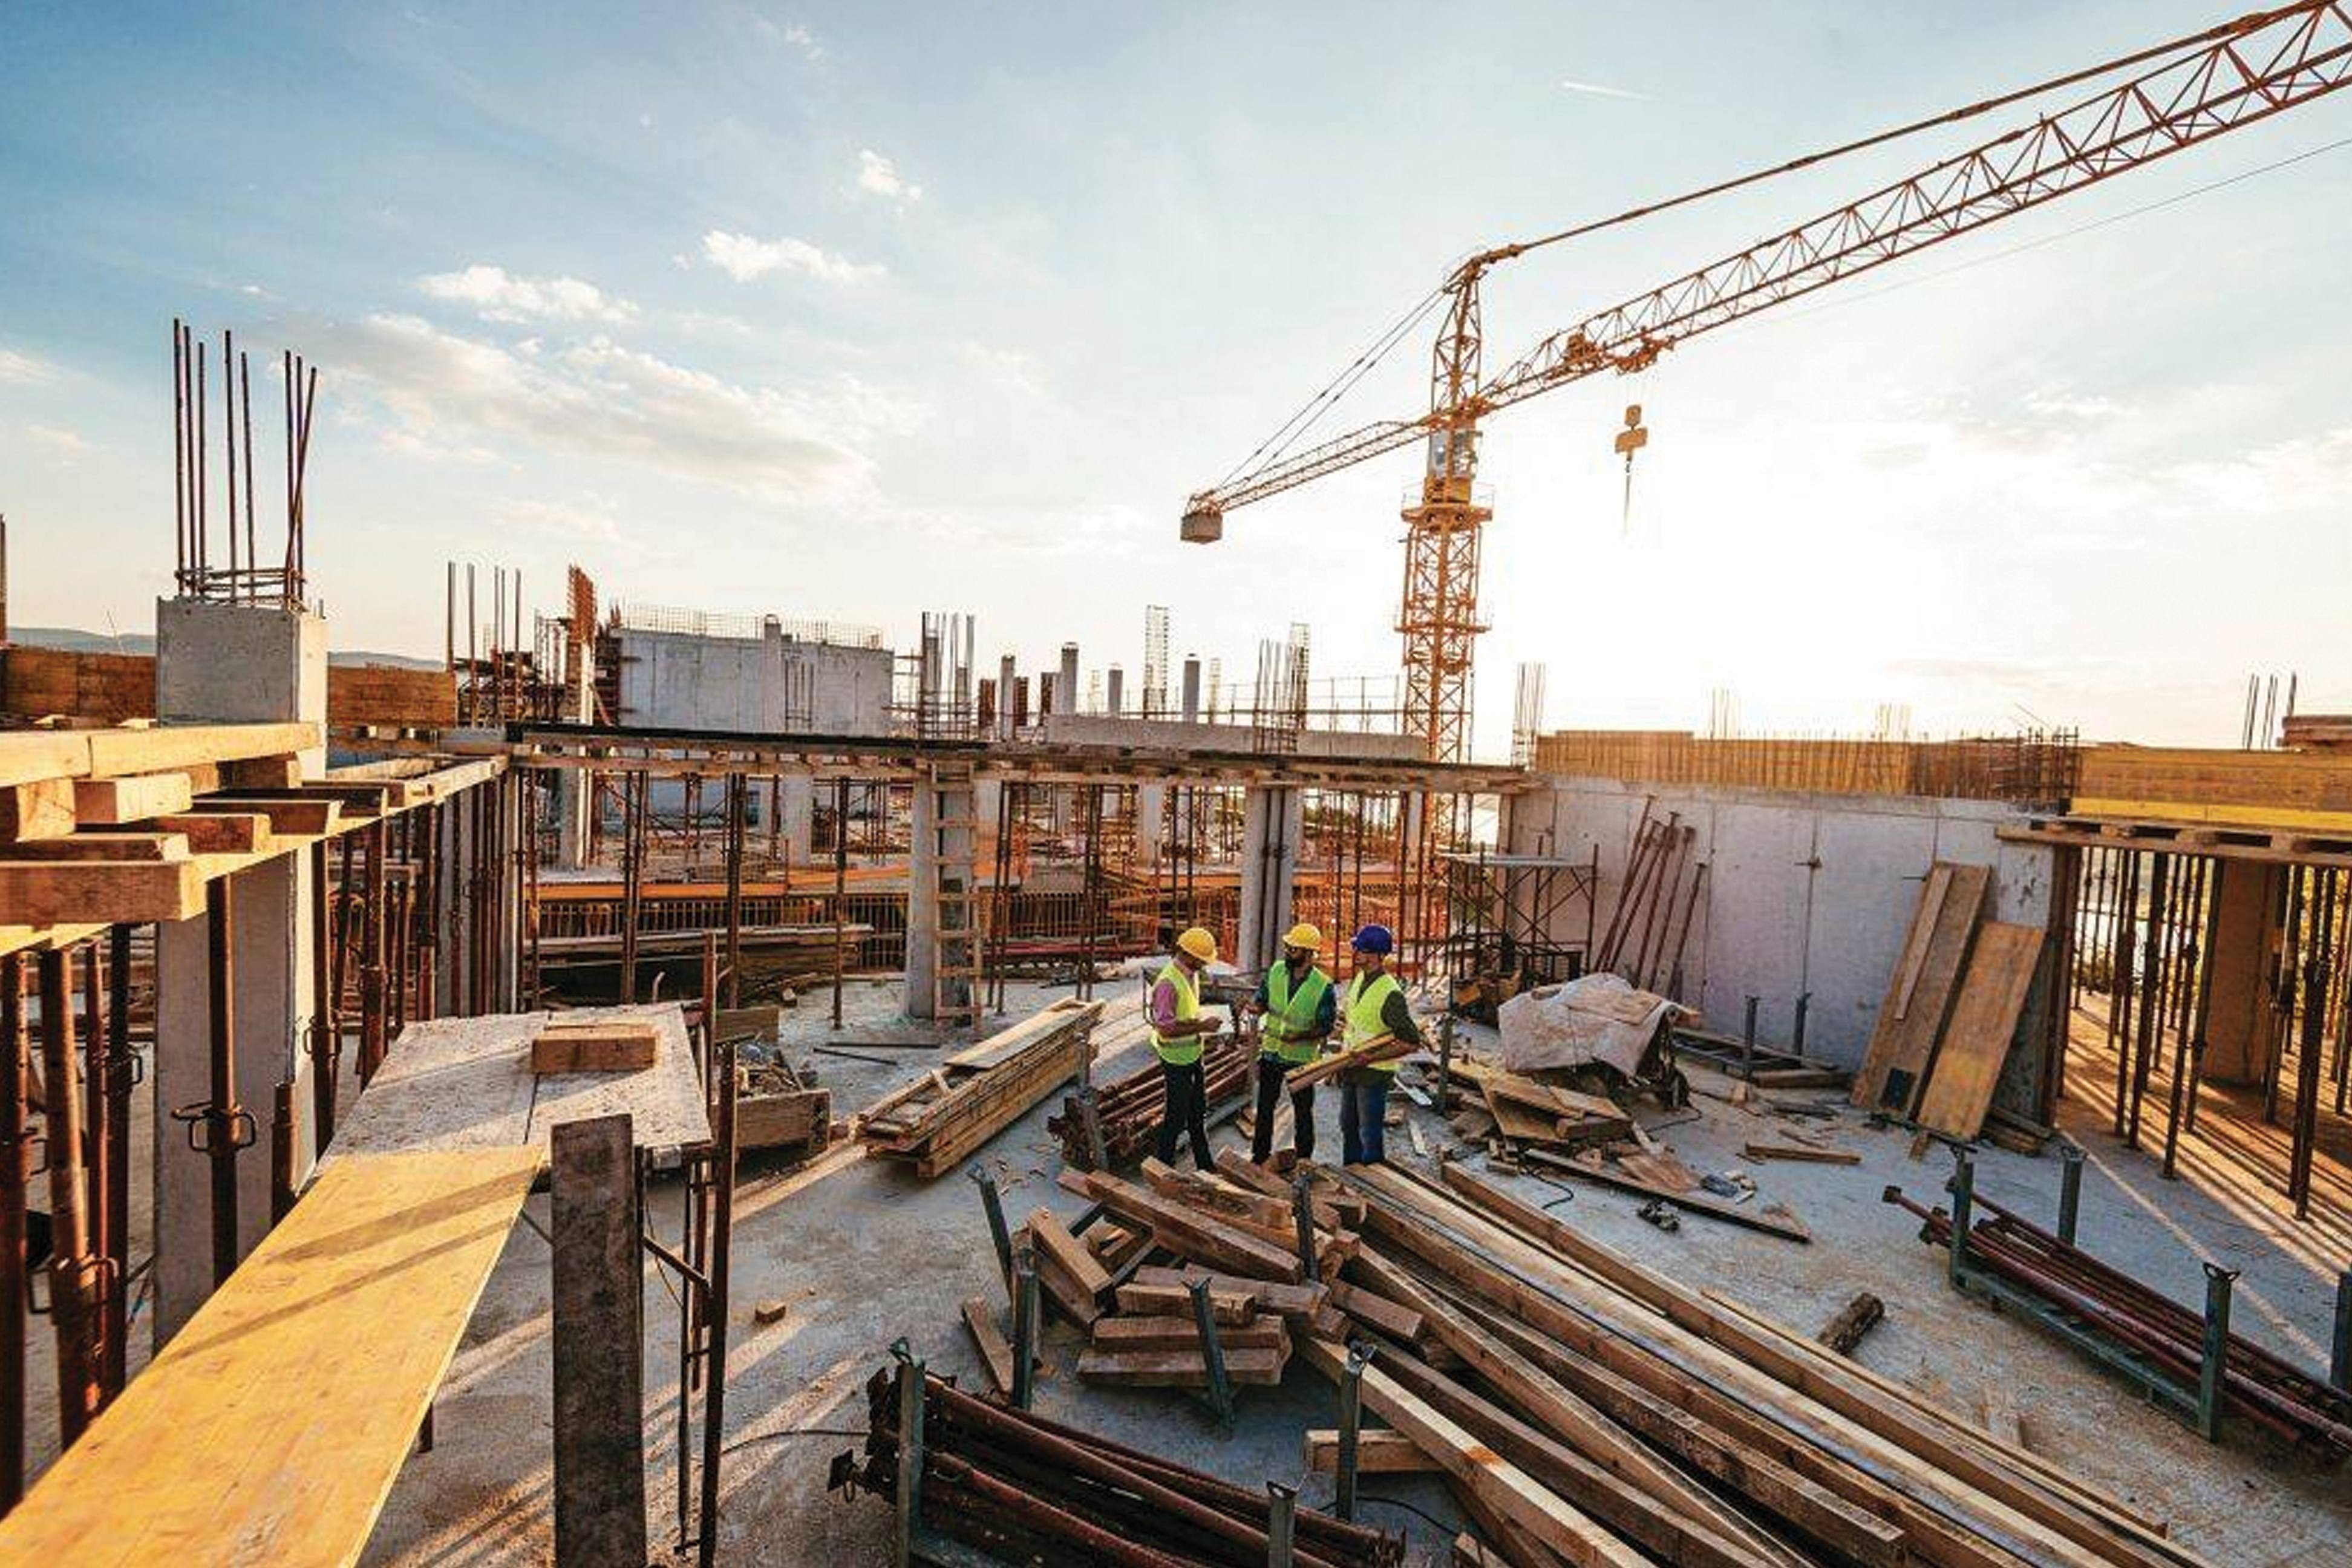 Three construction workers talk on a job site, surrounded by lumber, half-finished walls, and a crane